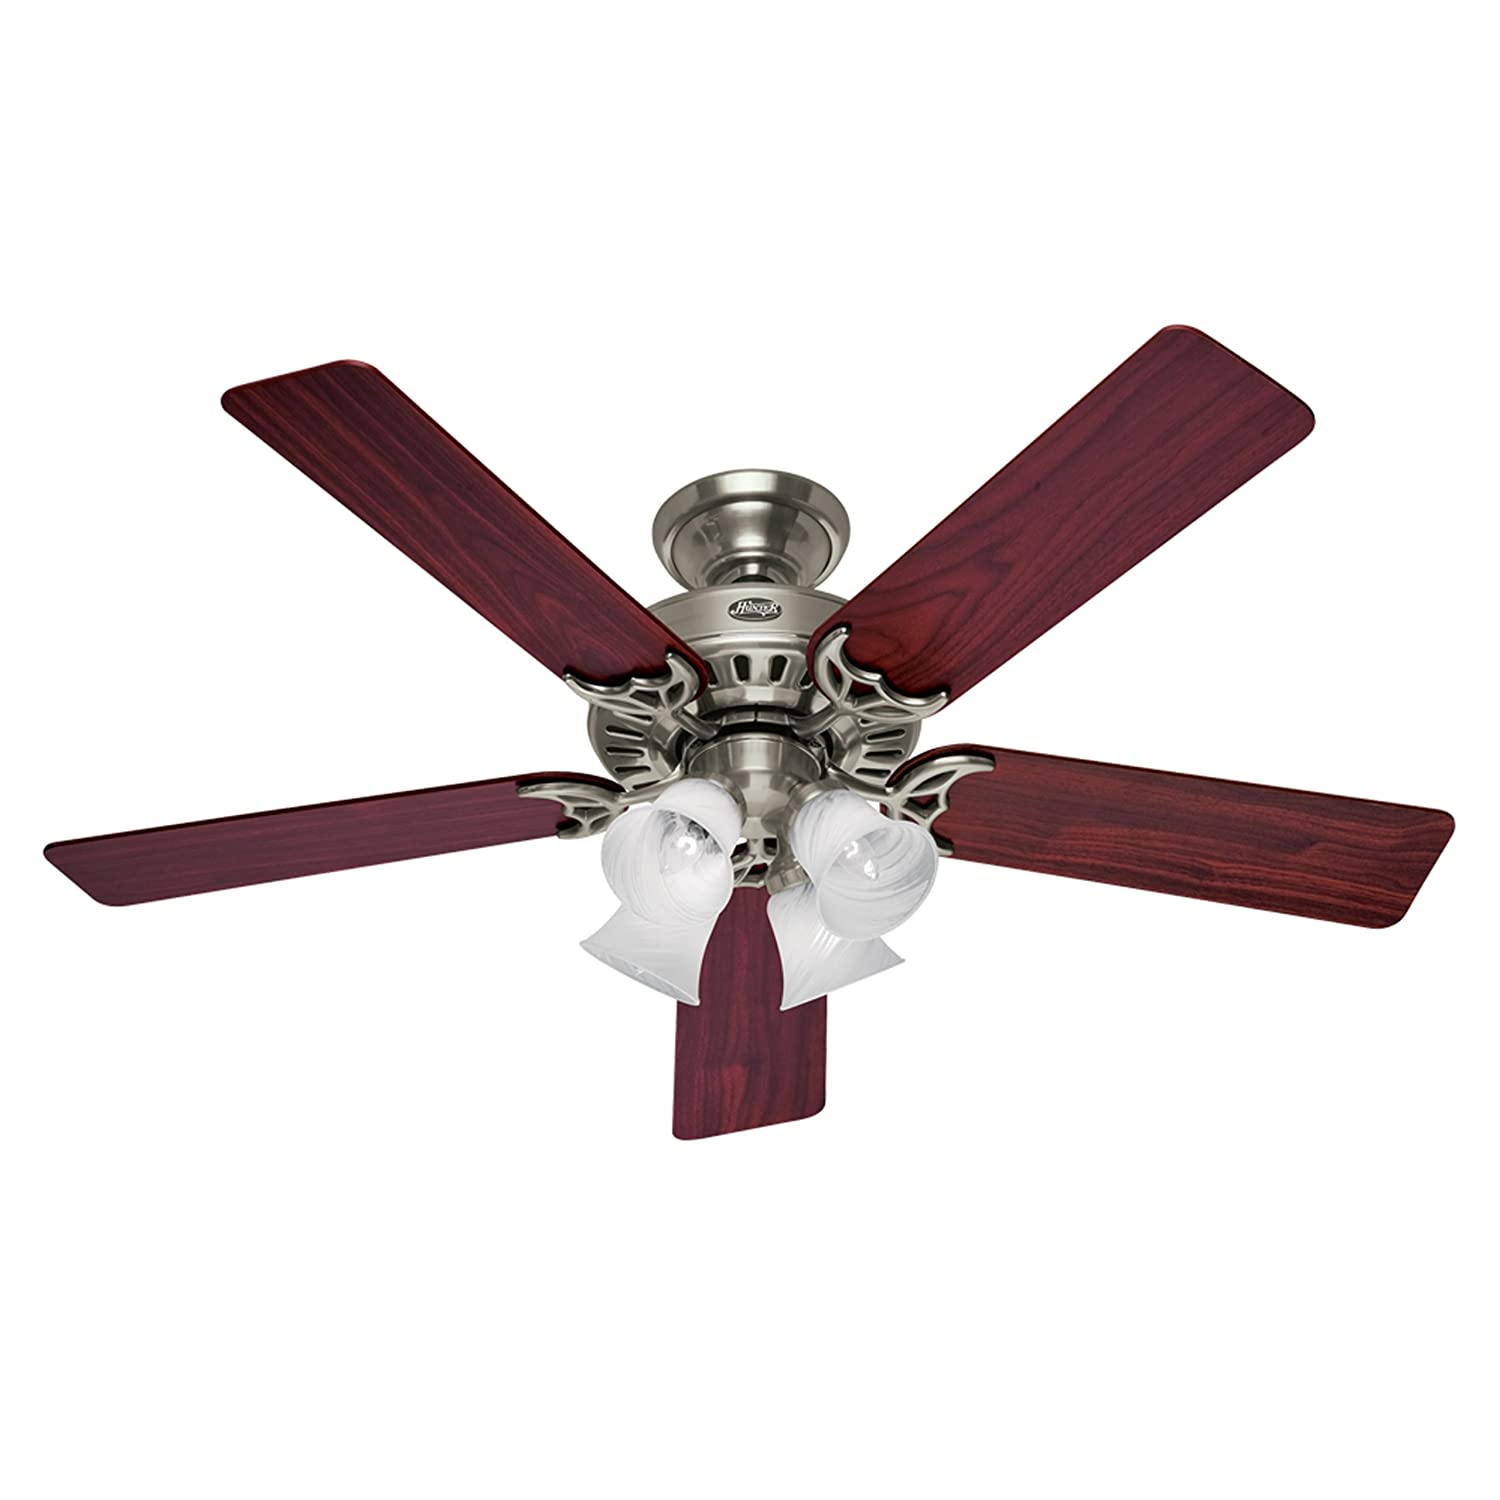 Hunter 52 Inch Studio Series Ceiling Fan Brushed Nickel with